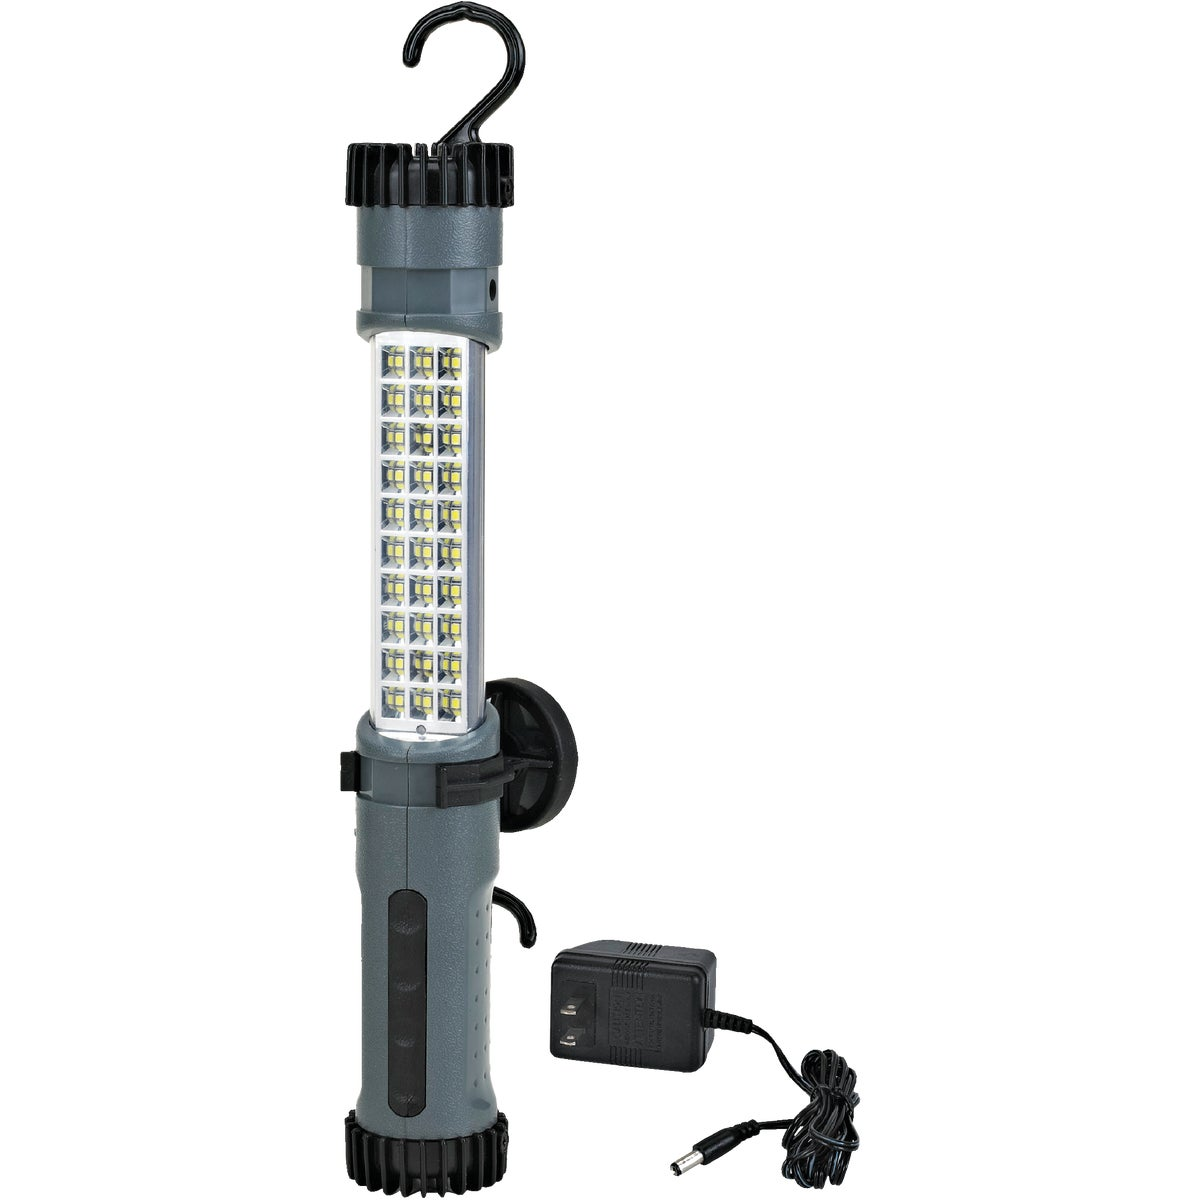 RECHARGE 28 LED LIGHT